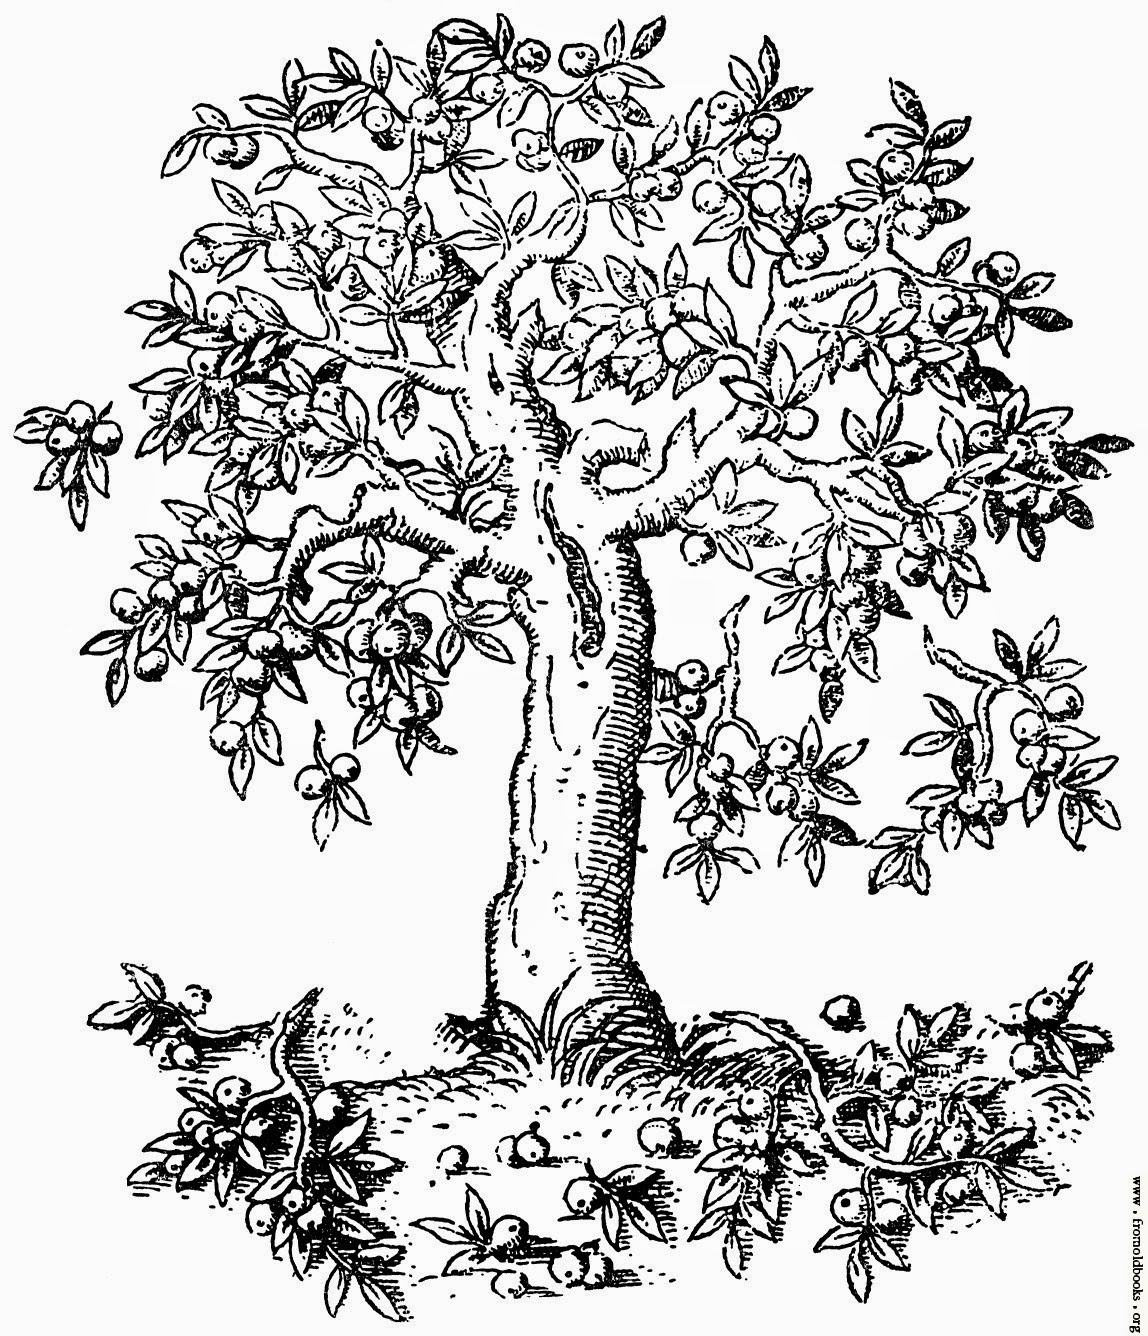 coloring pages fruit trees - photo#21